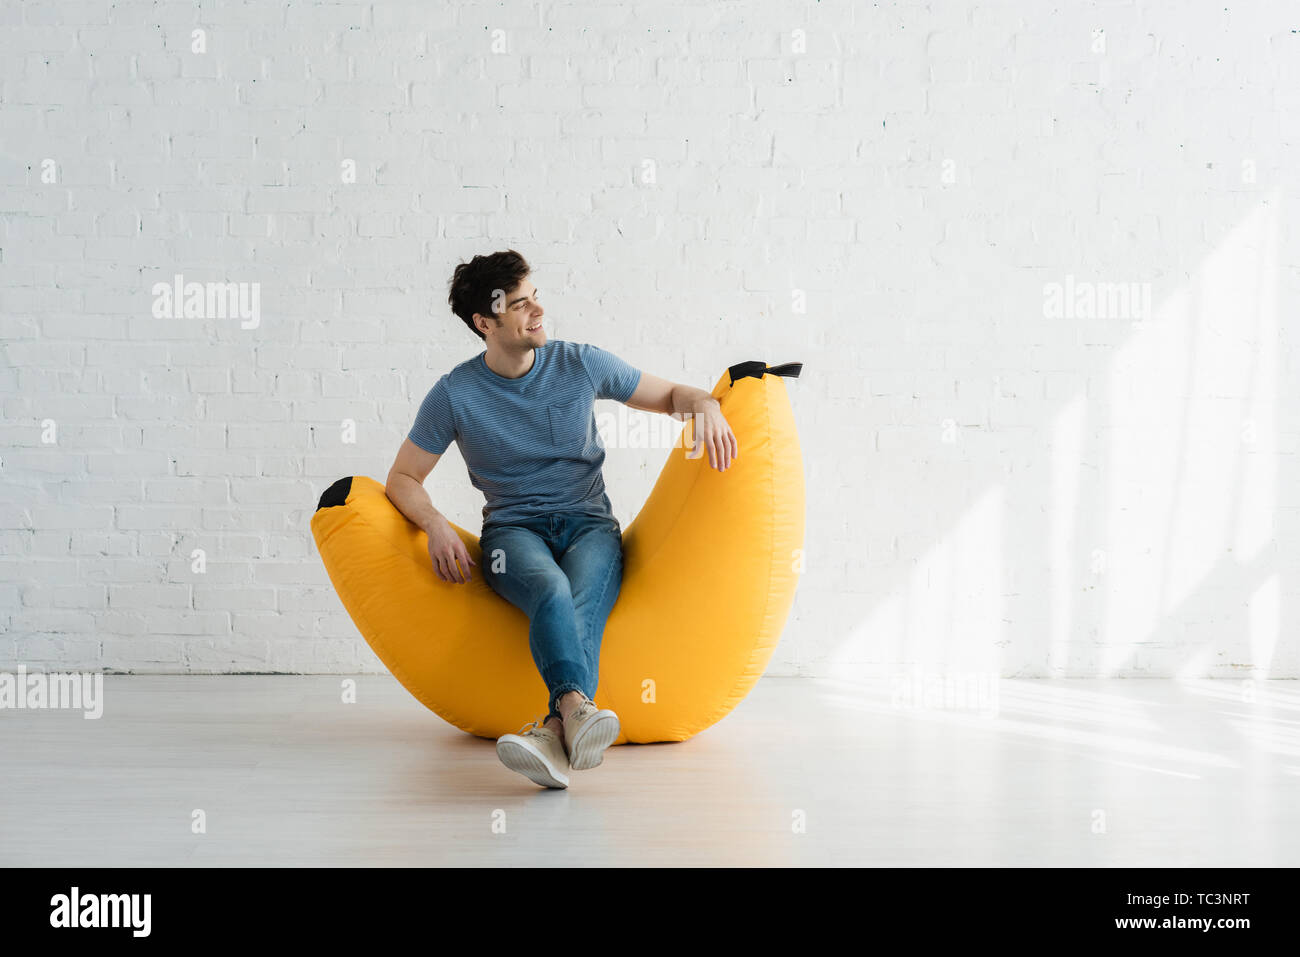 happy man sitting with crossed legs on yellow bean bag chair near white brick wall - Stock Image